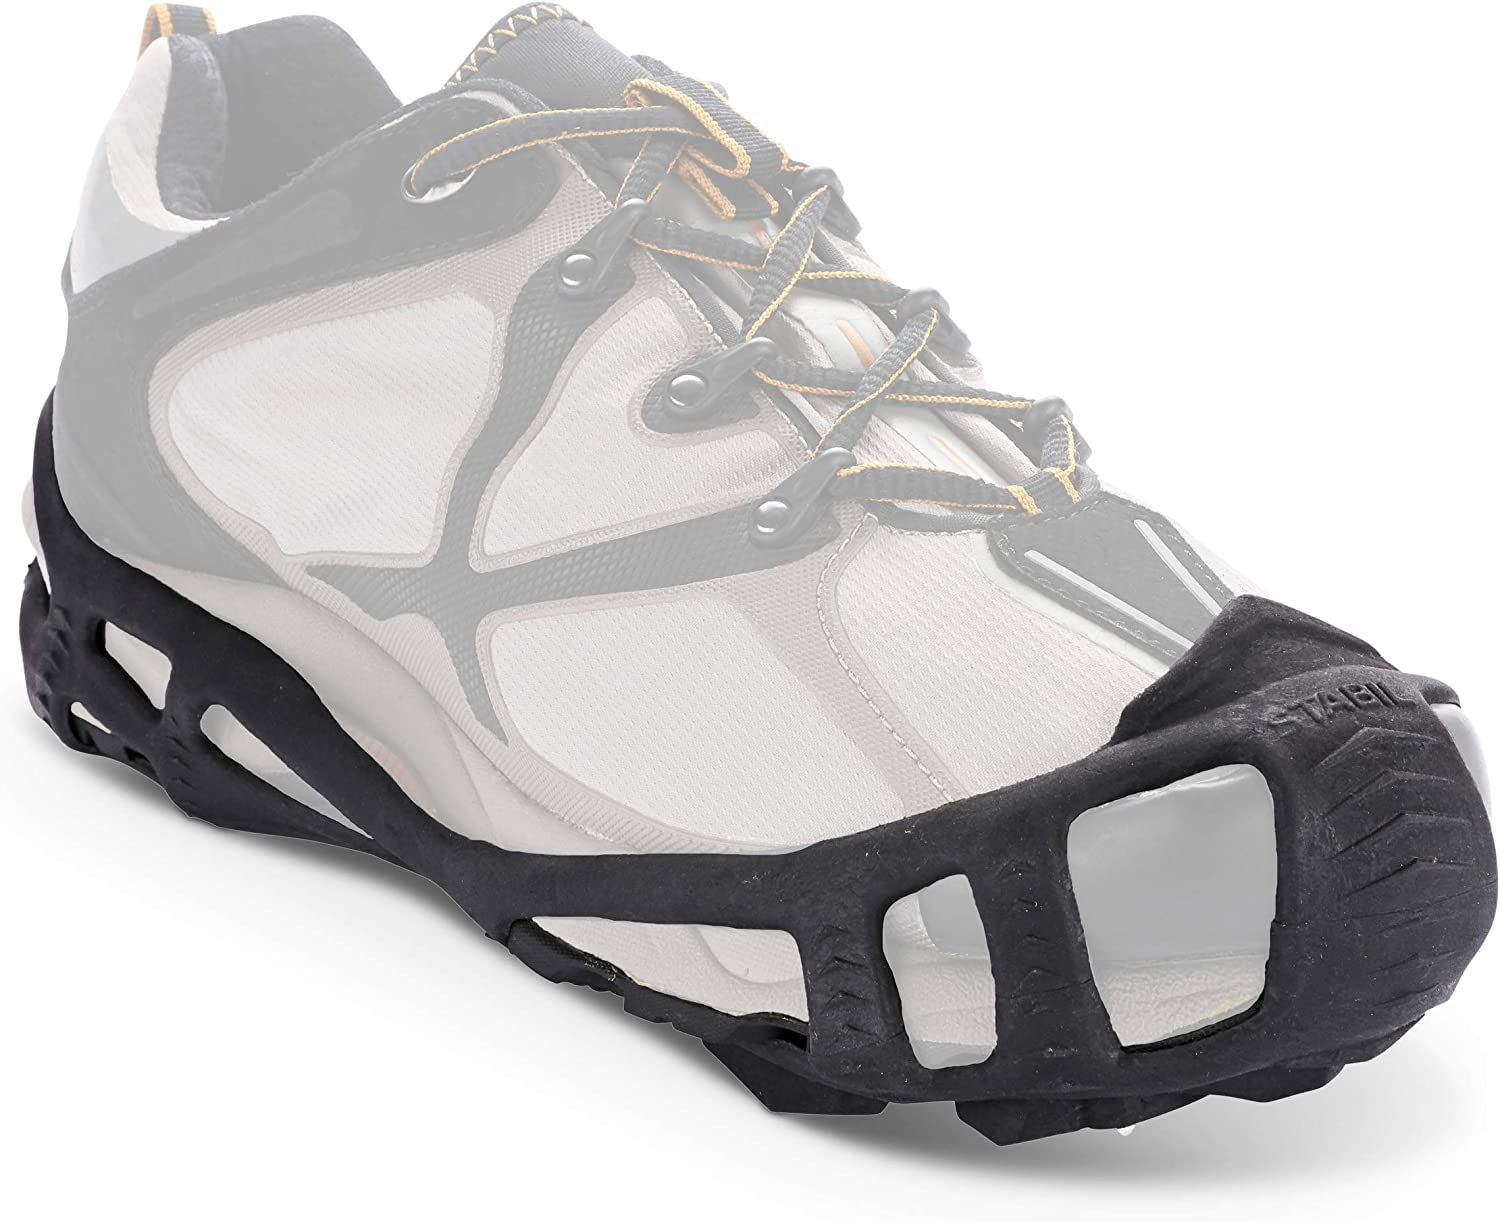 STABILicers Walk Traction Cleat for Walking on Snow and Ice Renewed 1 Pair